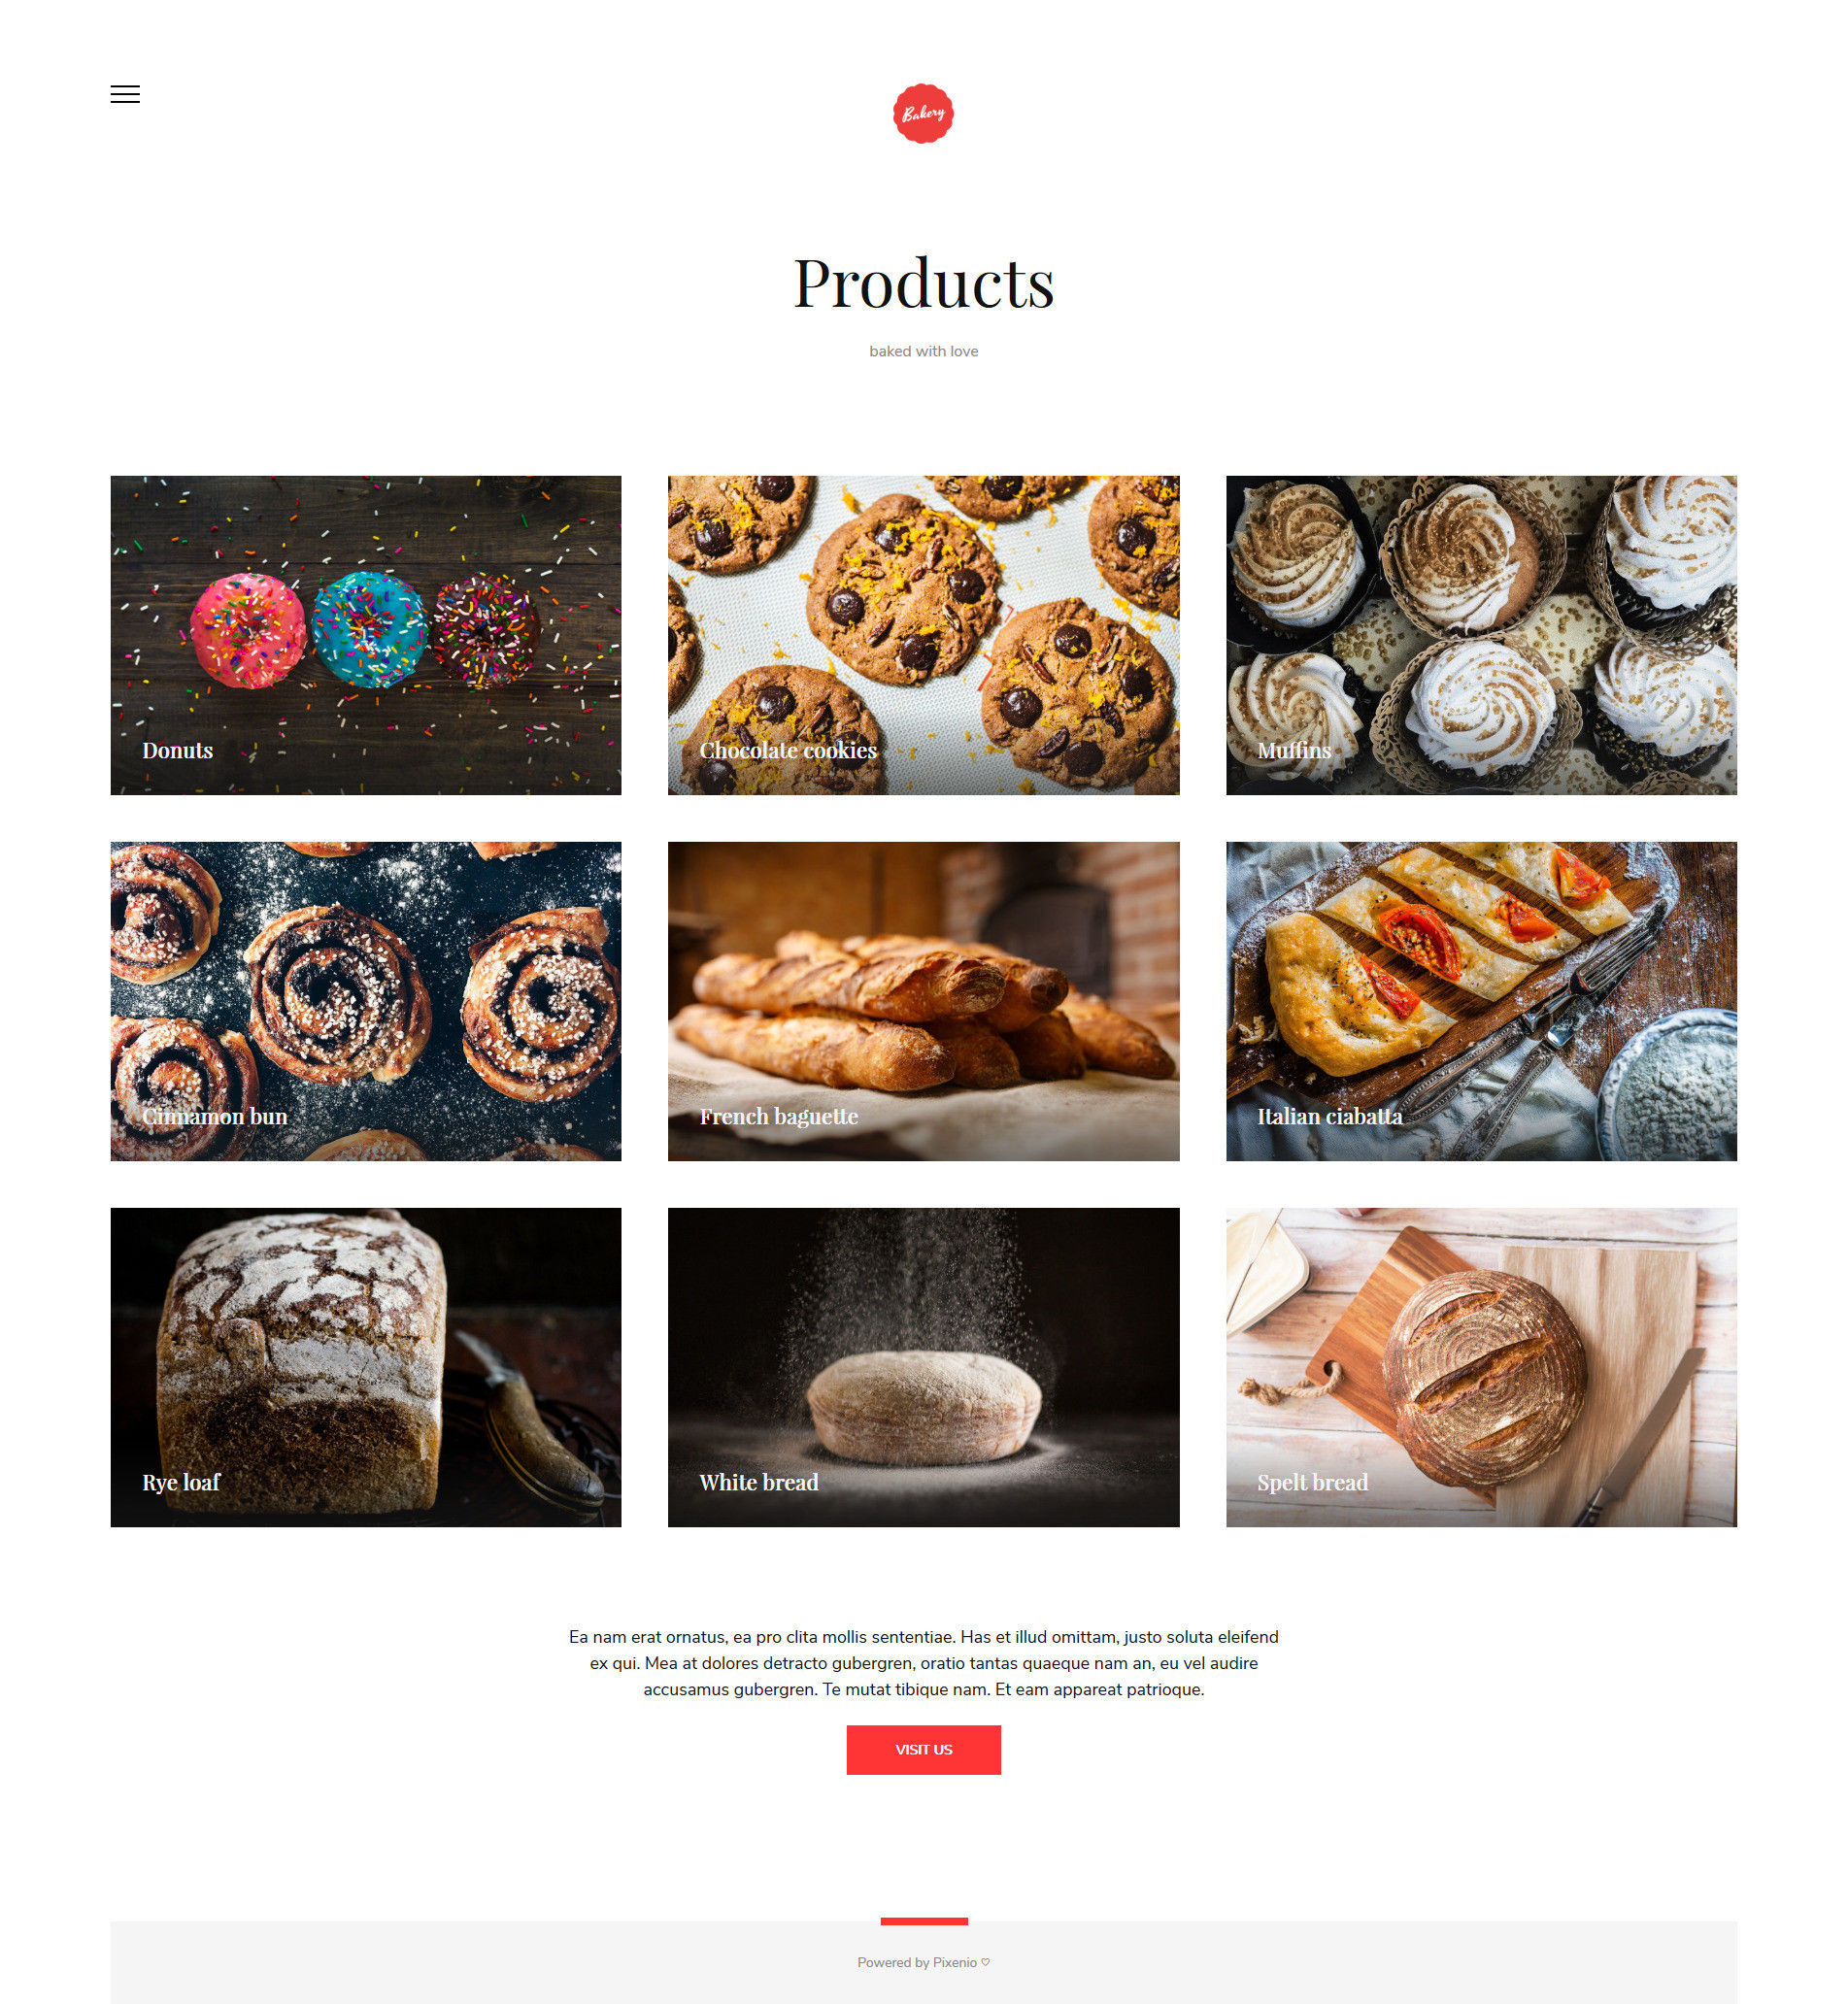 Online bakery website products